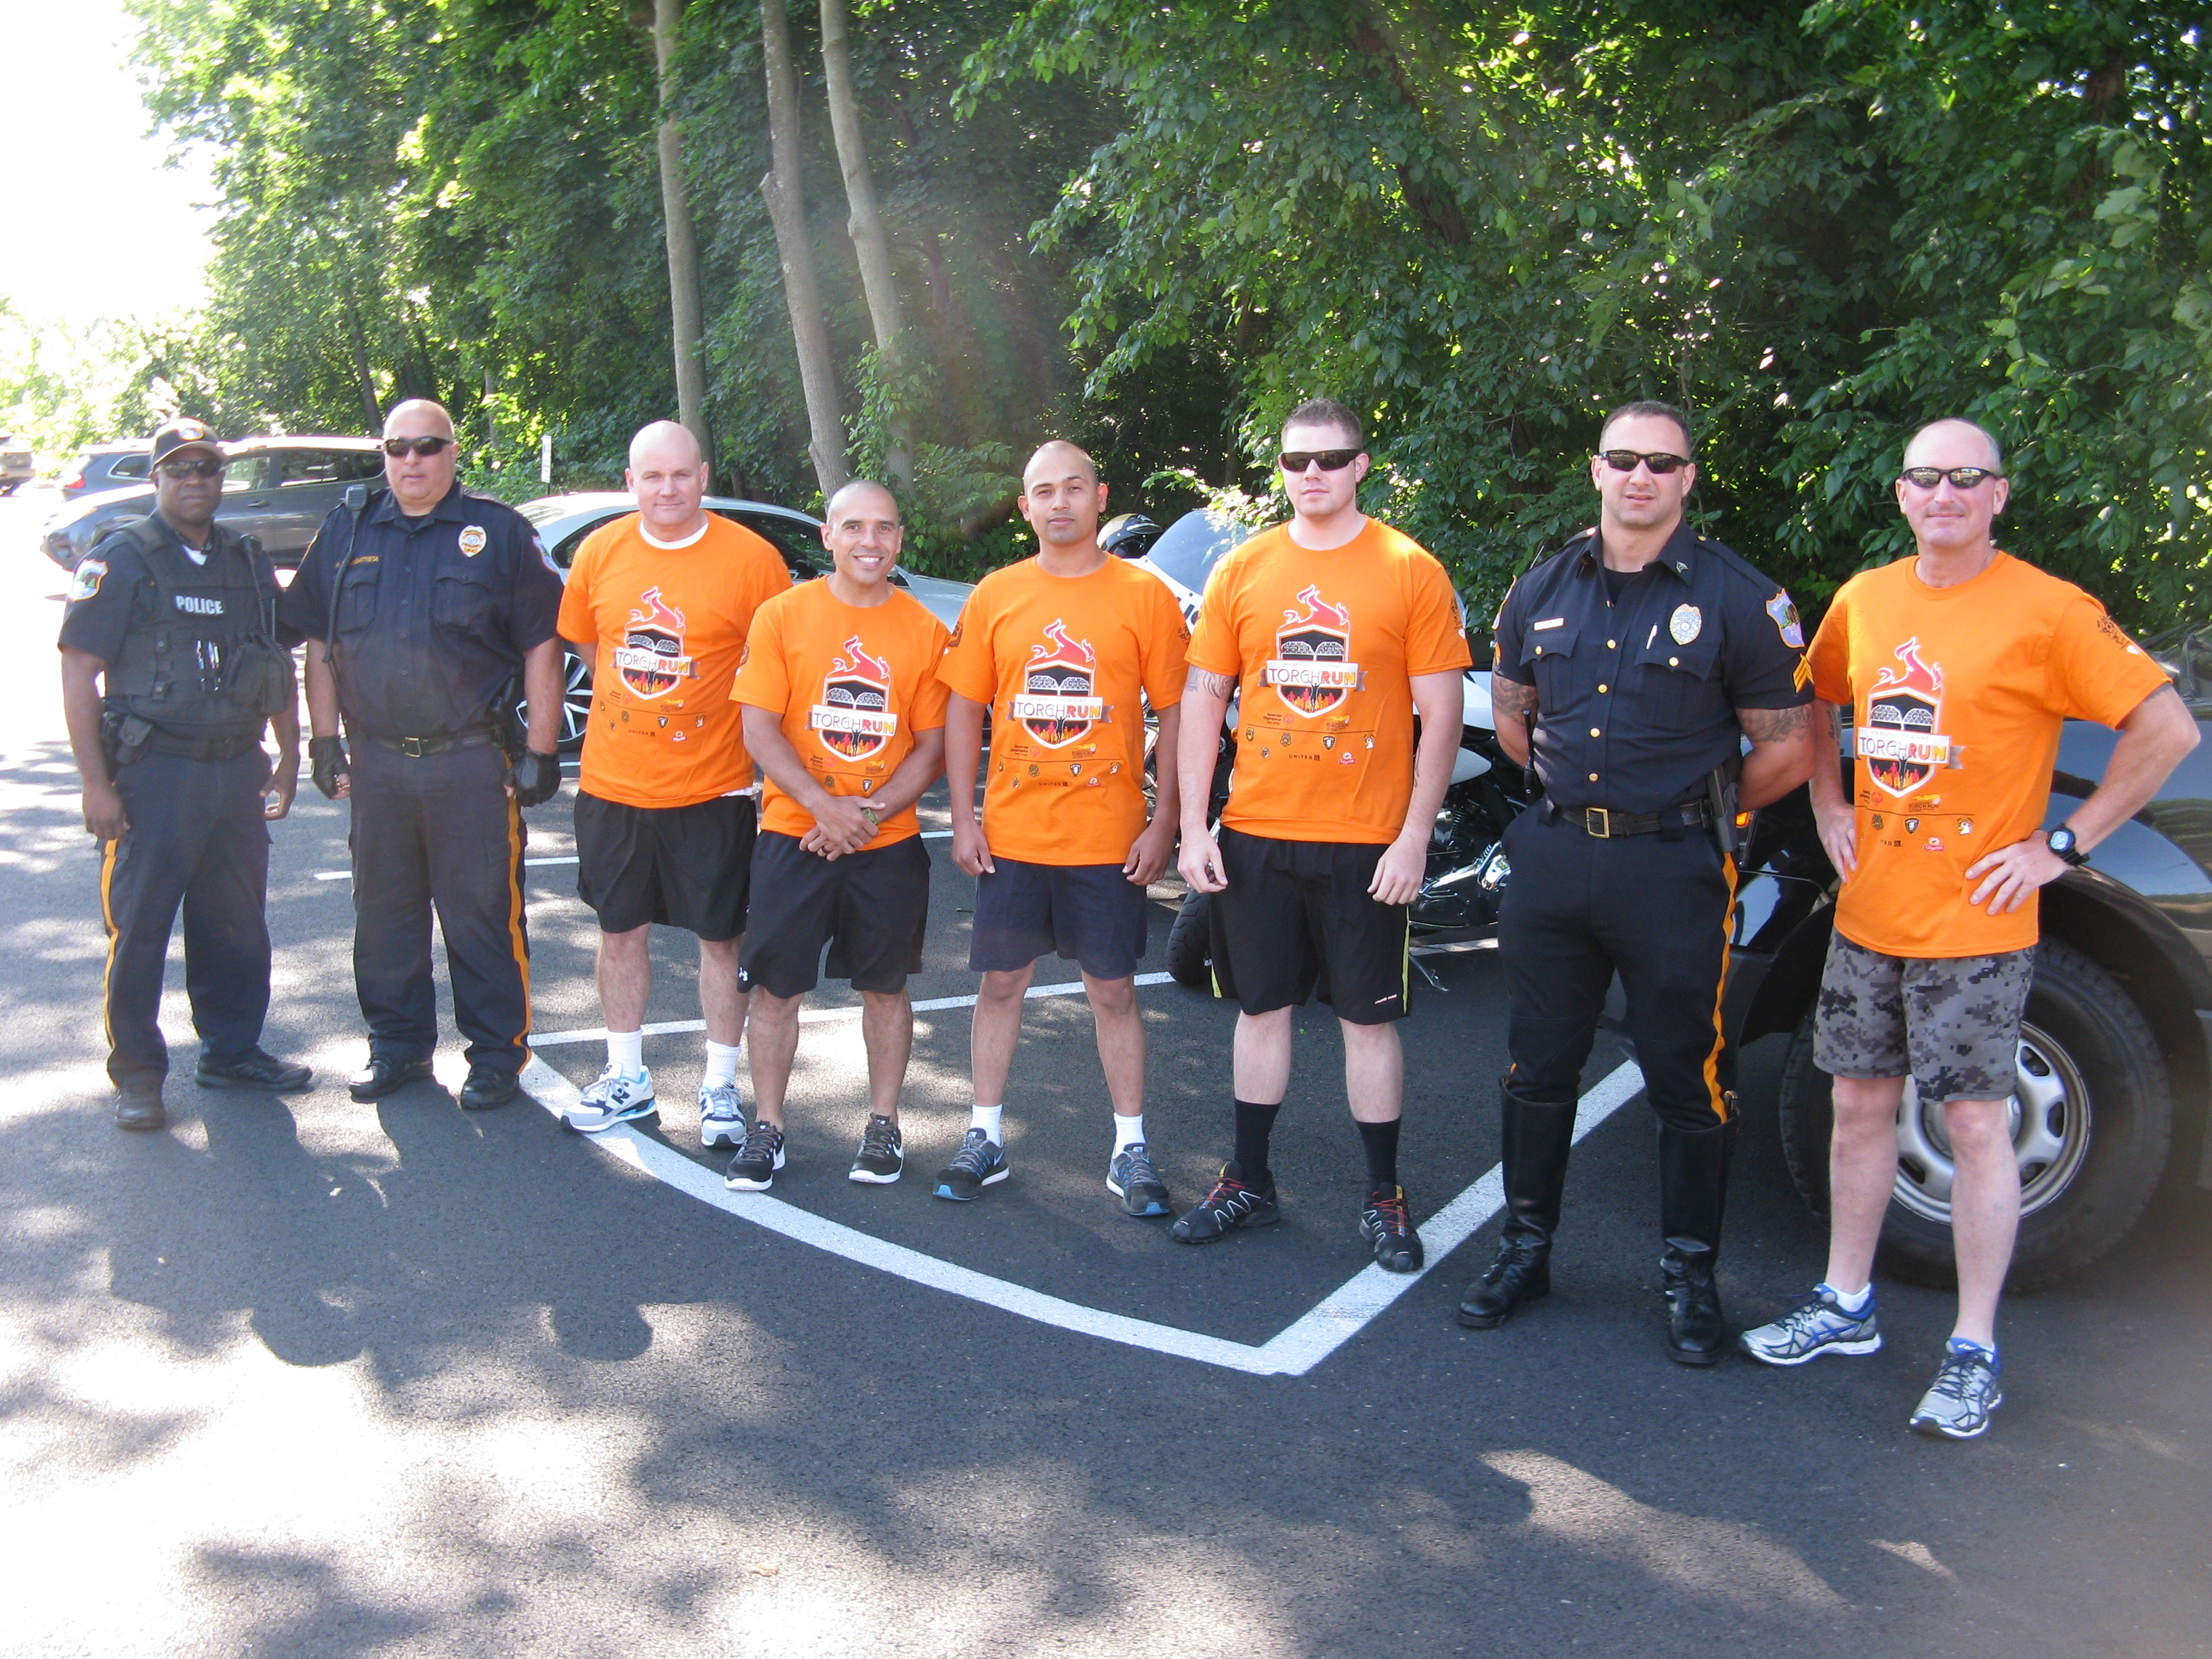 Merced County joins Torch Run to support Special Olympics